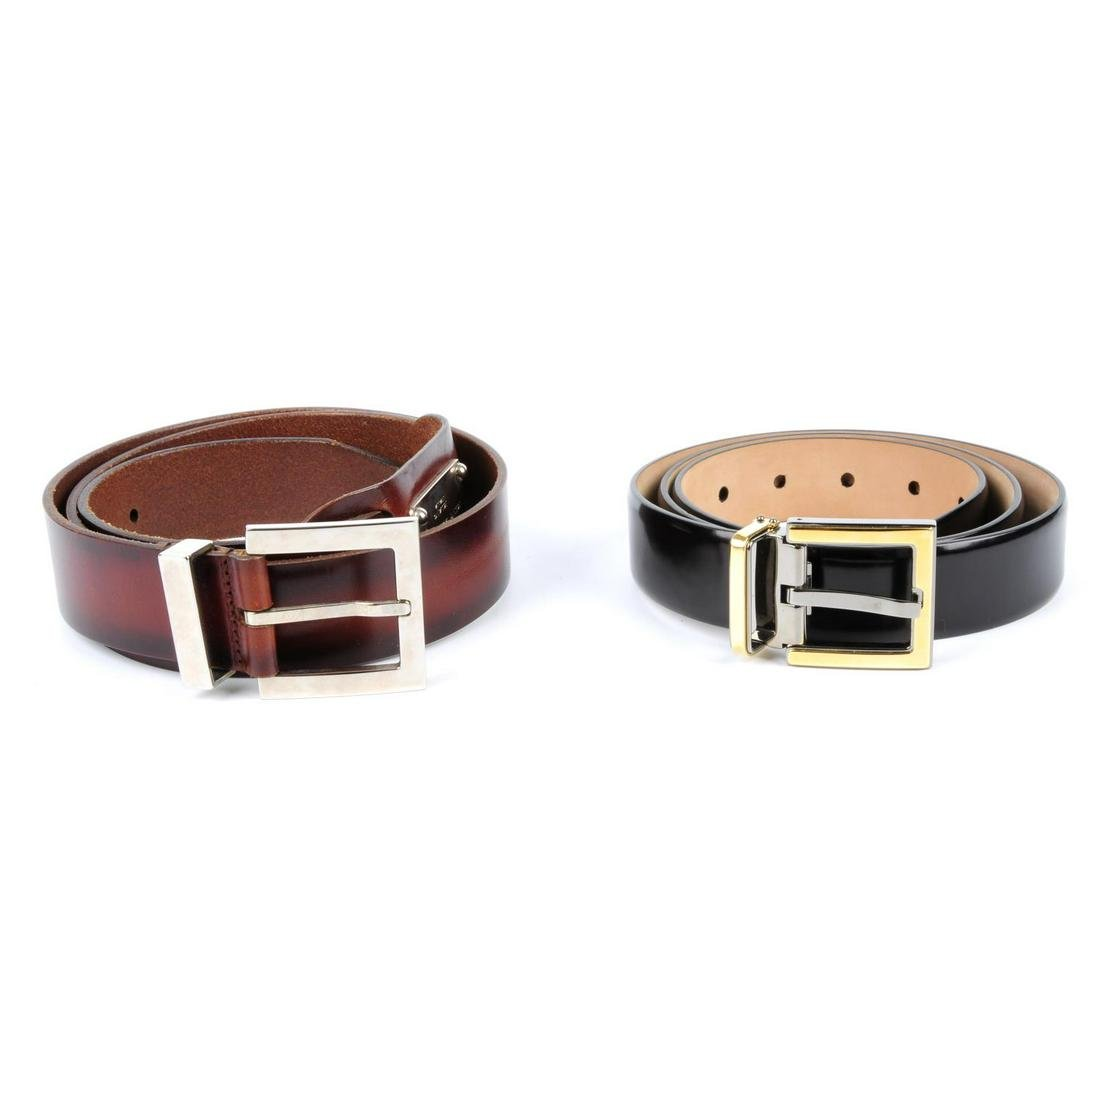 DOLCE & GABBANA - two belts. To include a polished